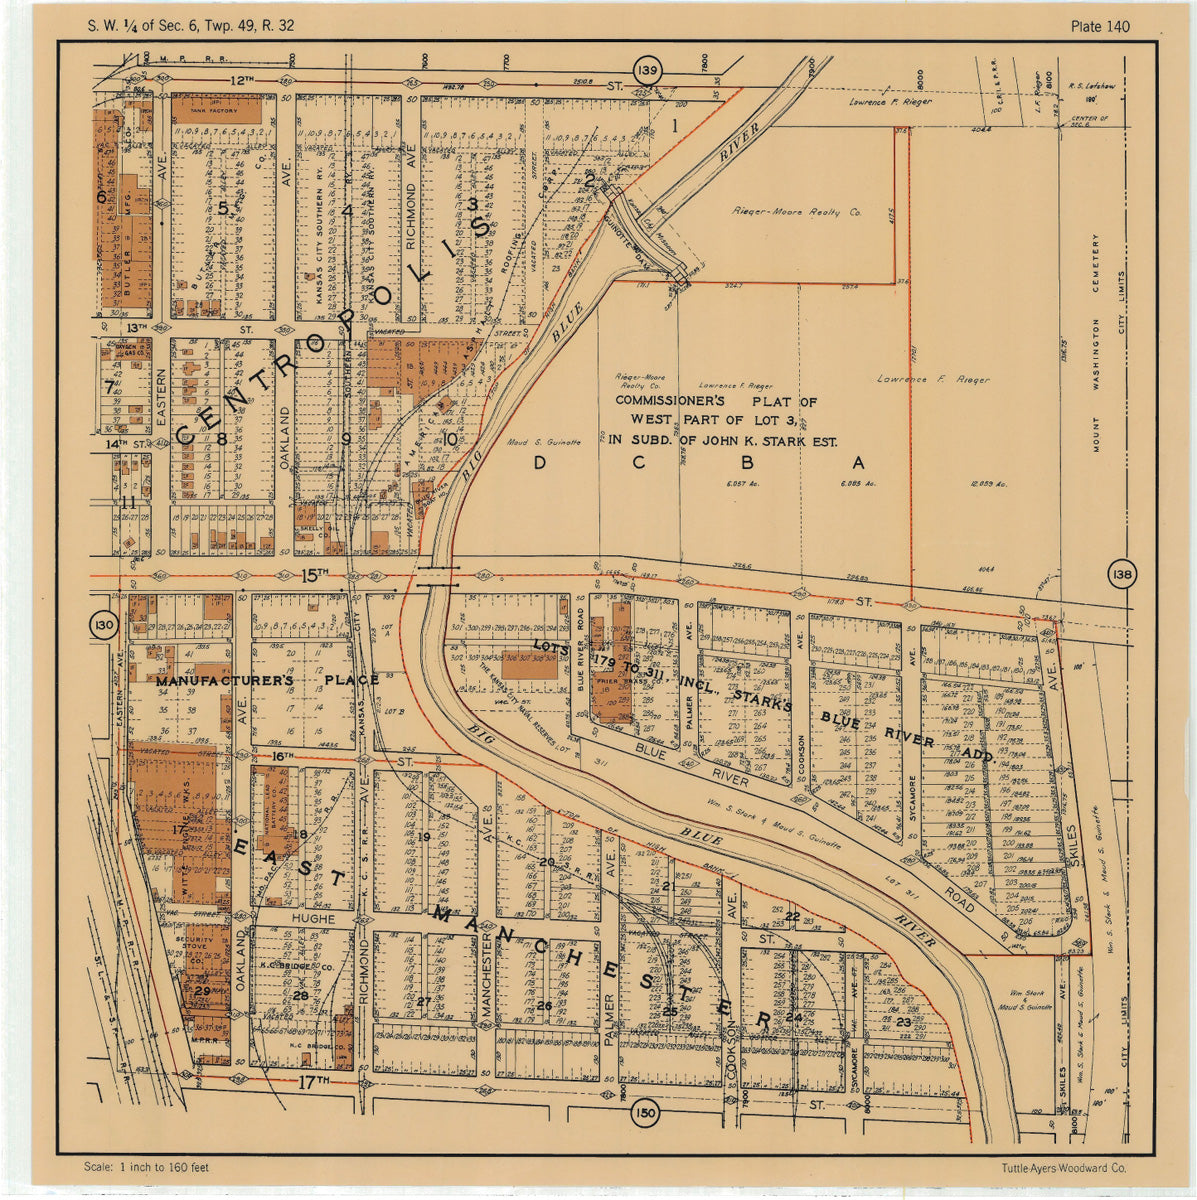 Kansas City 1925 Neighborhood Map - Plate #140 12th-17th Eastern-Skiles